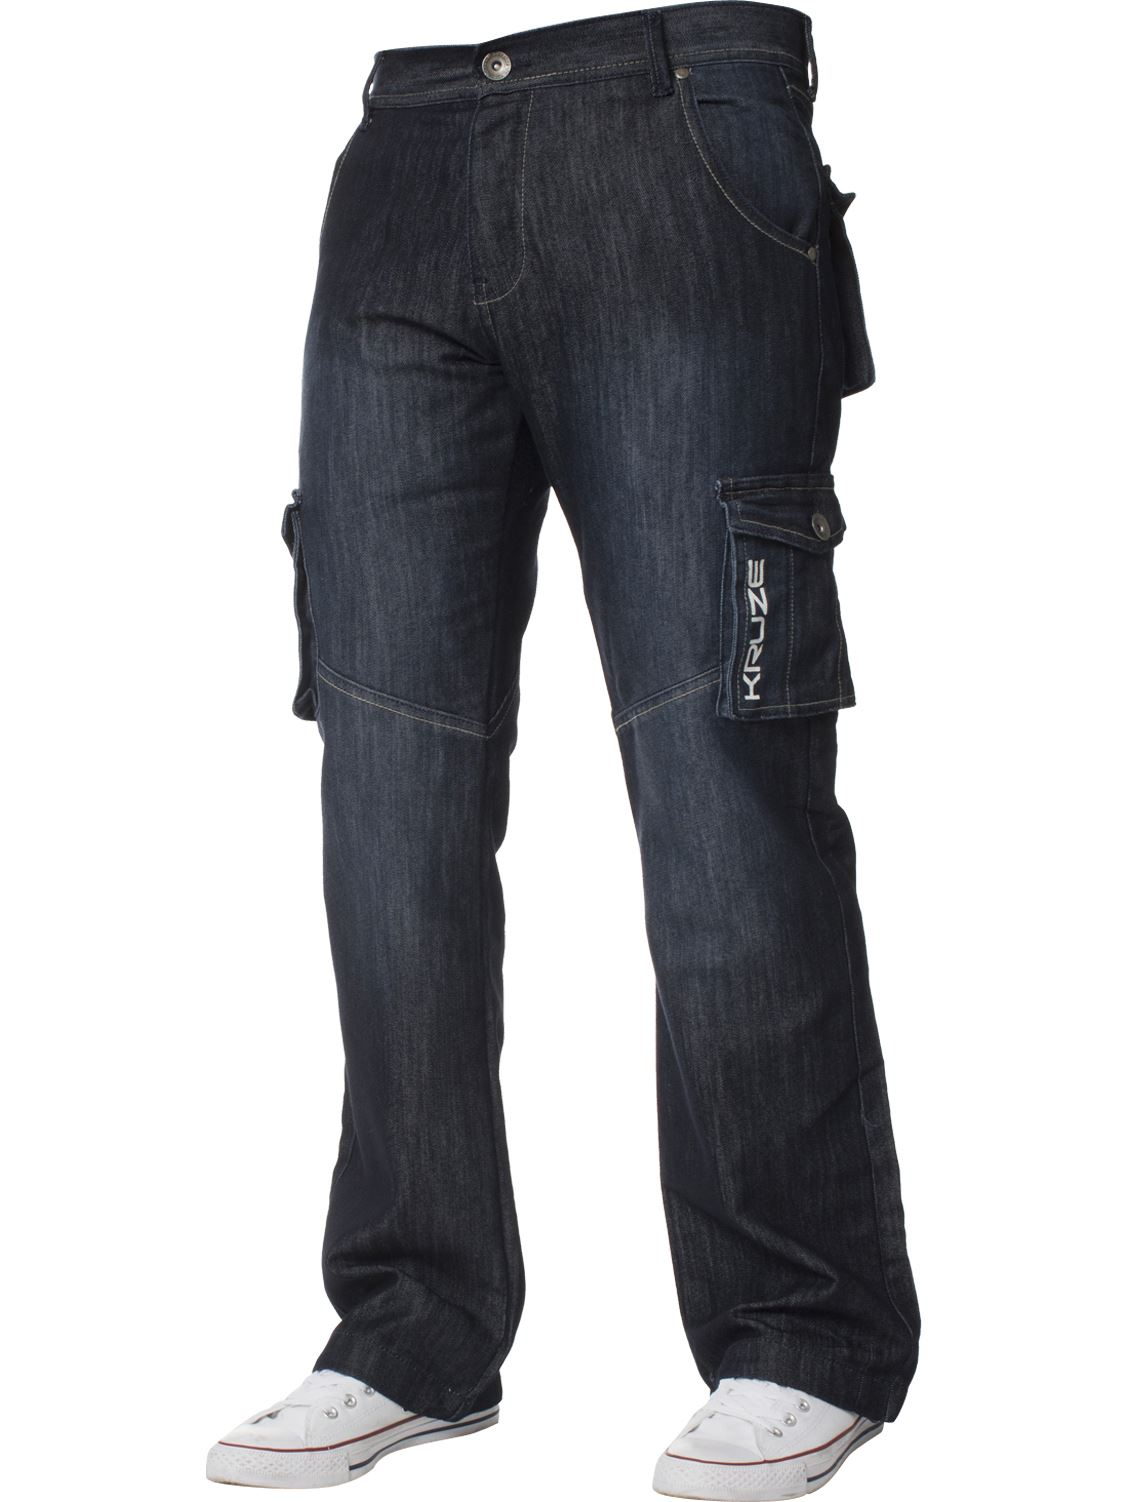 Mens-Cargo-Jeans-Combat-Trousers-Heavy-Duty-Work-Casual-Big-Tall-Denim-Pants thumbnail 72